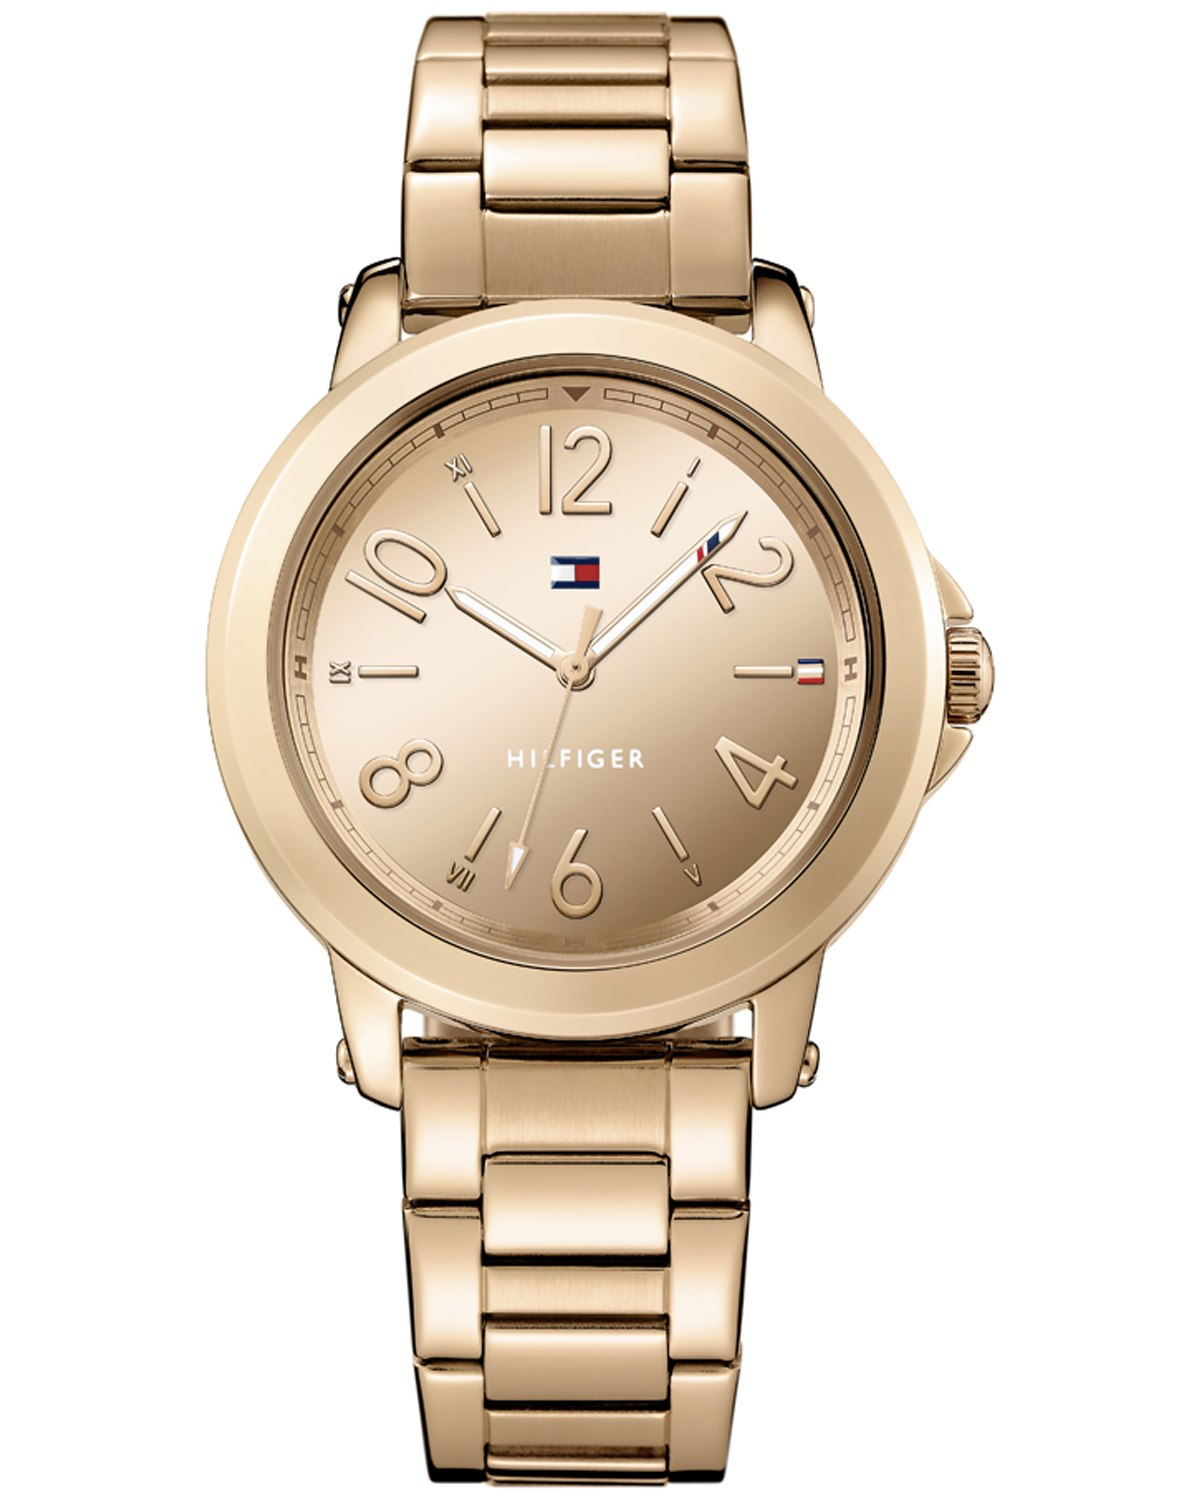 mmy hilfiger rose gold stainless steel bracelet. Black Bedroom Furniture Sets. Home Design Ideas